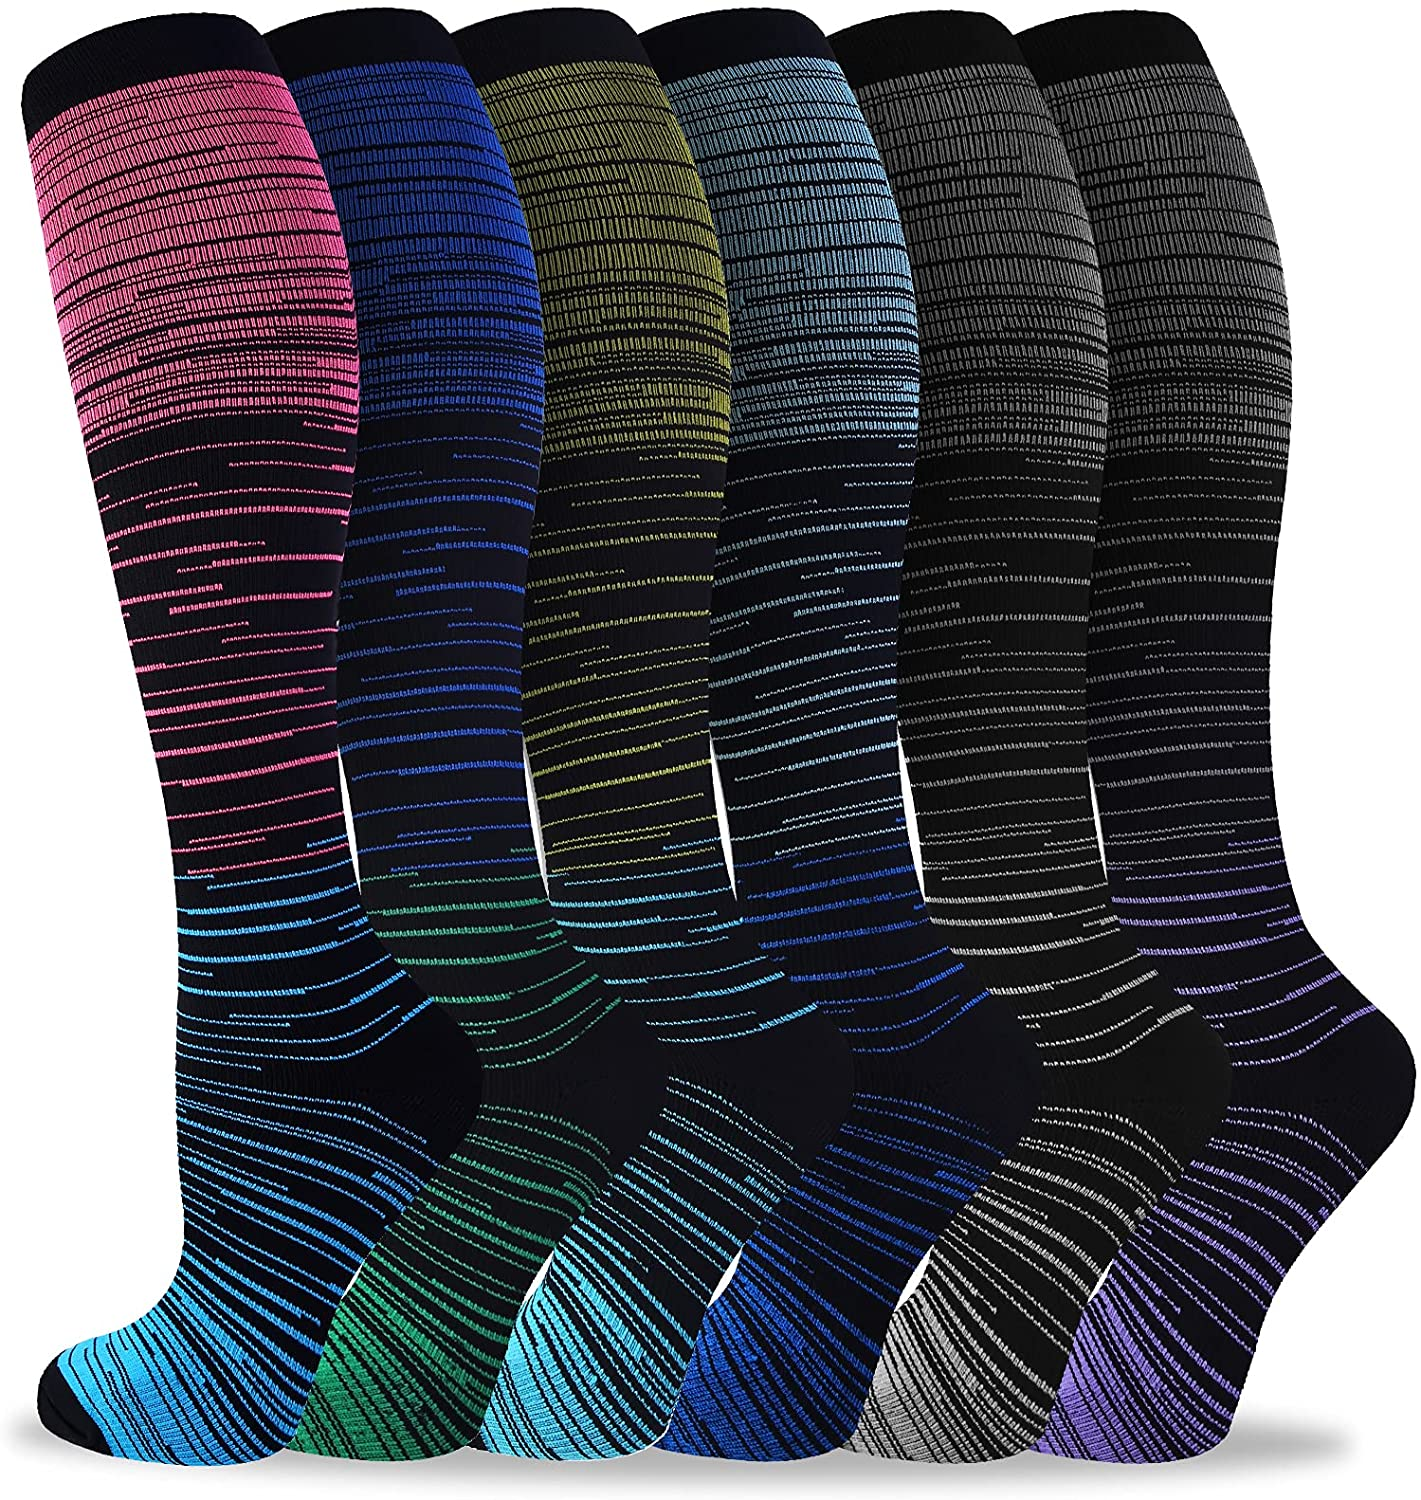 Bropite 6 Pairs Compression Socks Medi 20-30mmhg Men Don't miss the campaign Women Special Campaign for